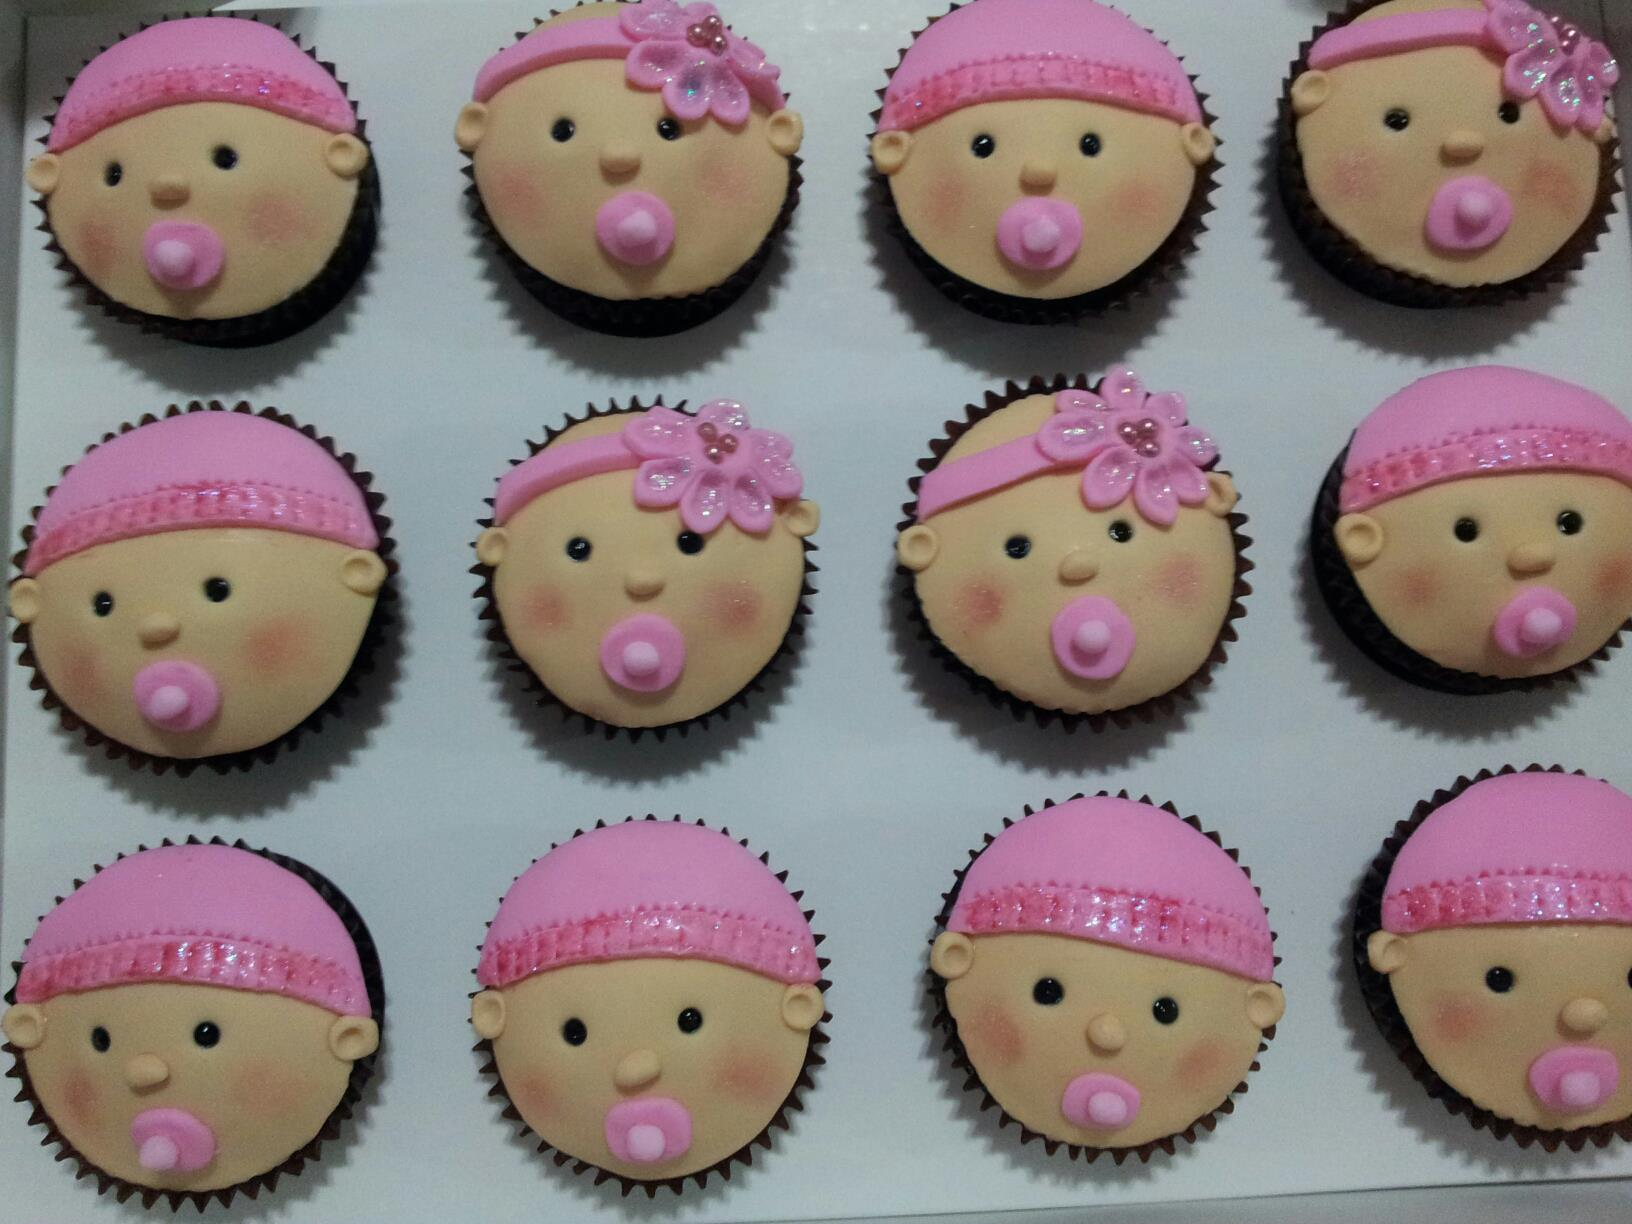 Cute cupcake ideas created by Cupcakes by Lee